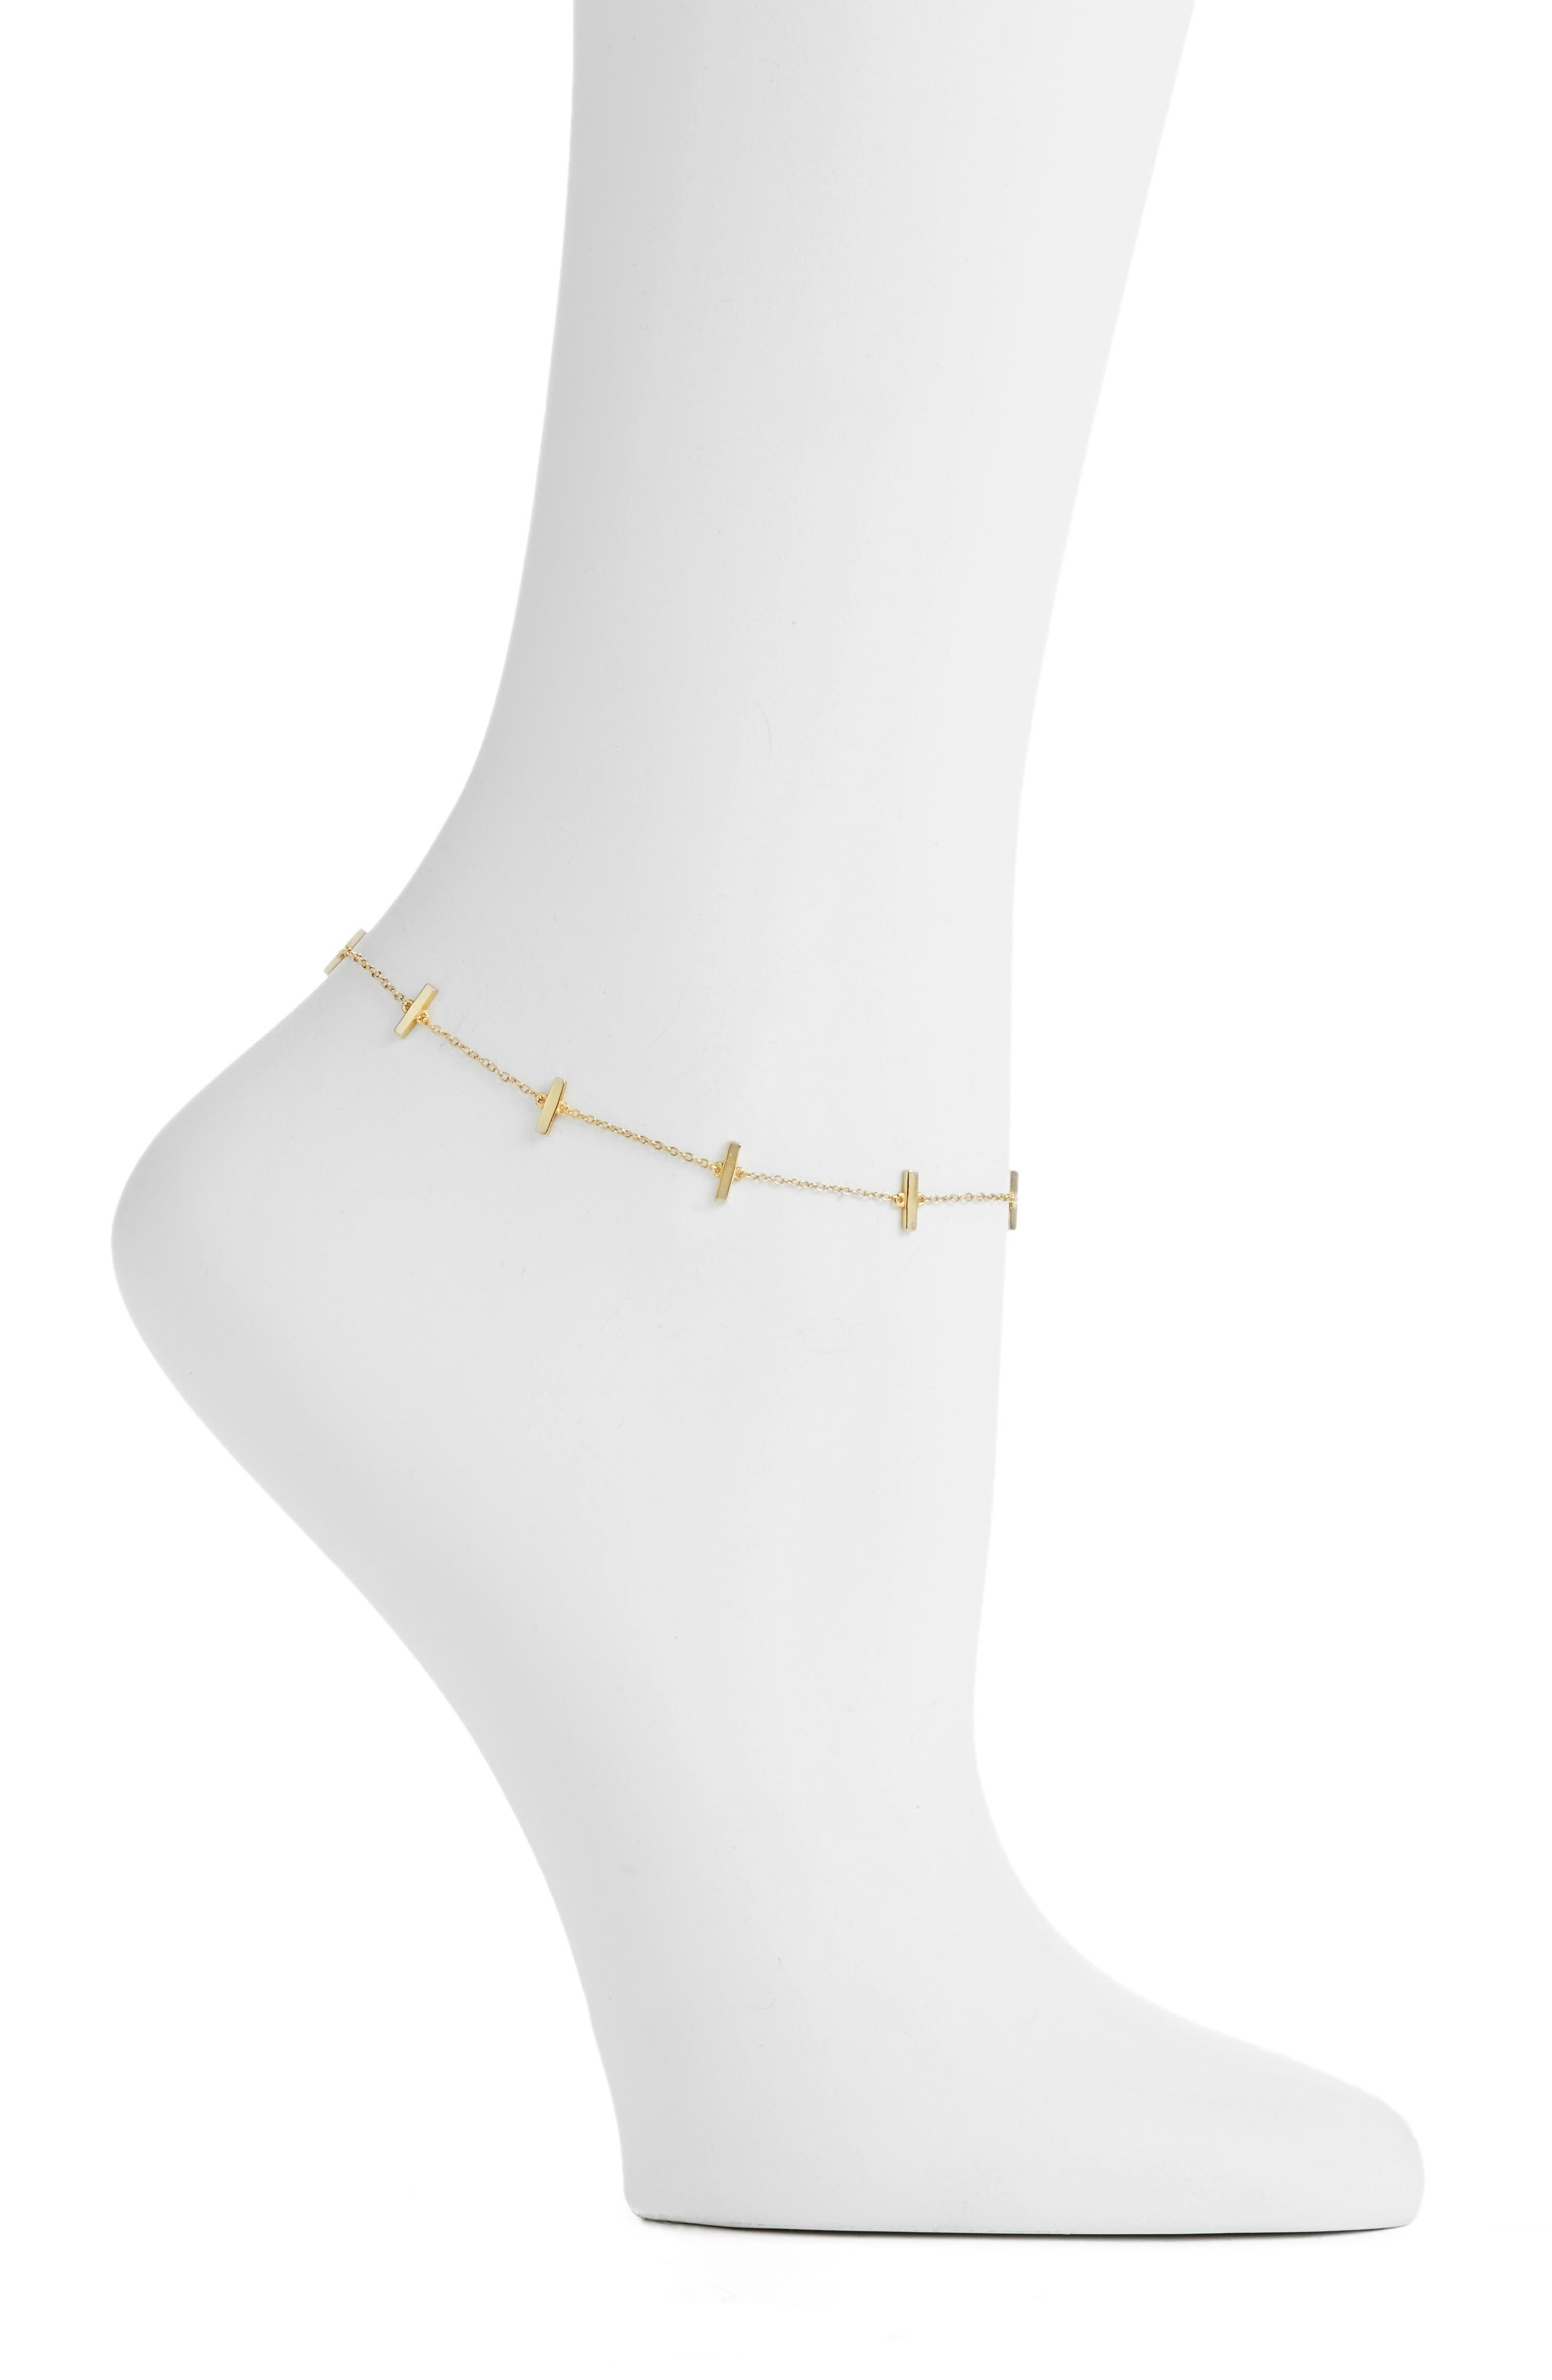 Alternate Image 1 Selected - Argento Vivo Bar Station Anklet